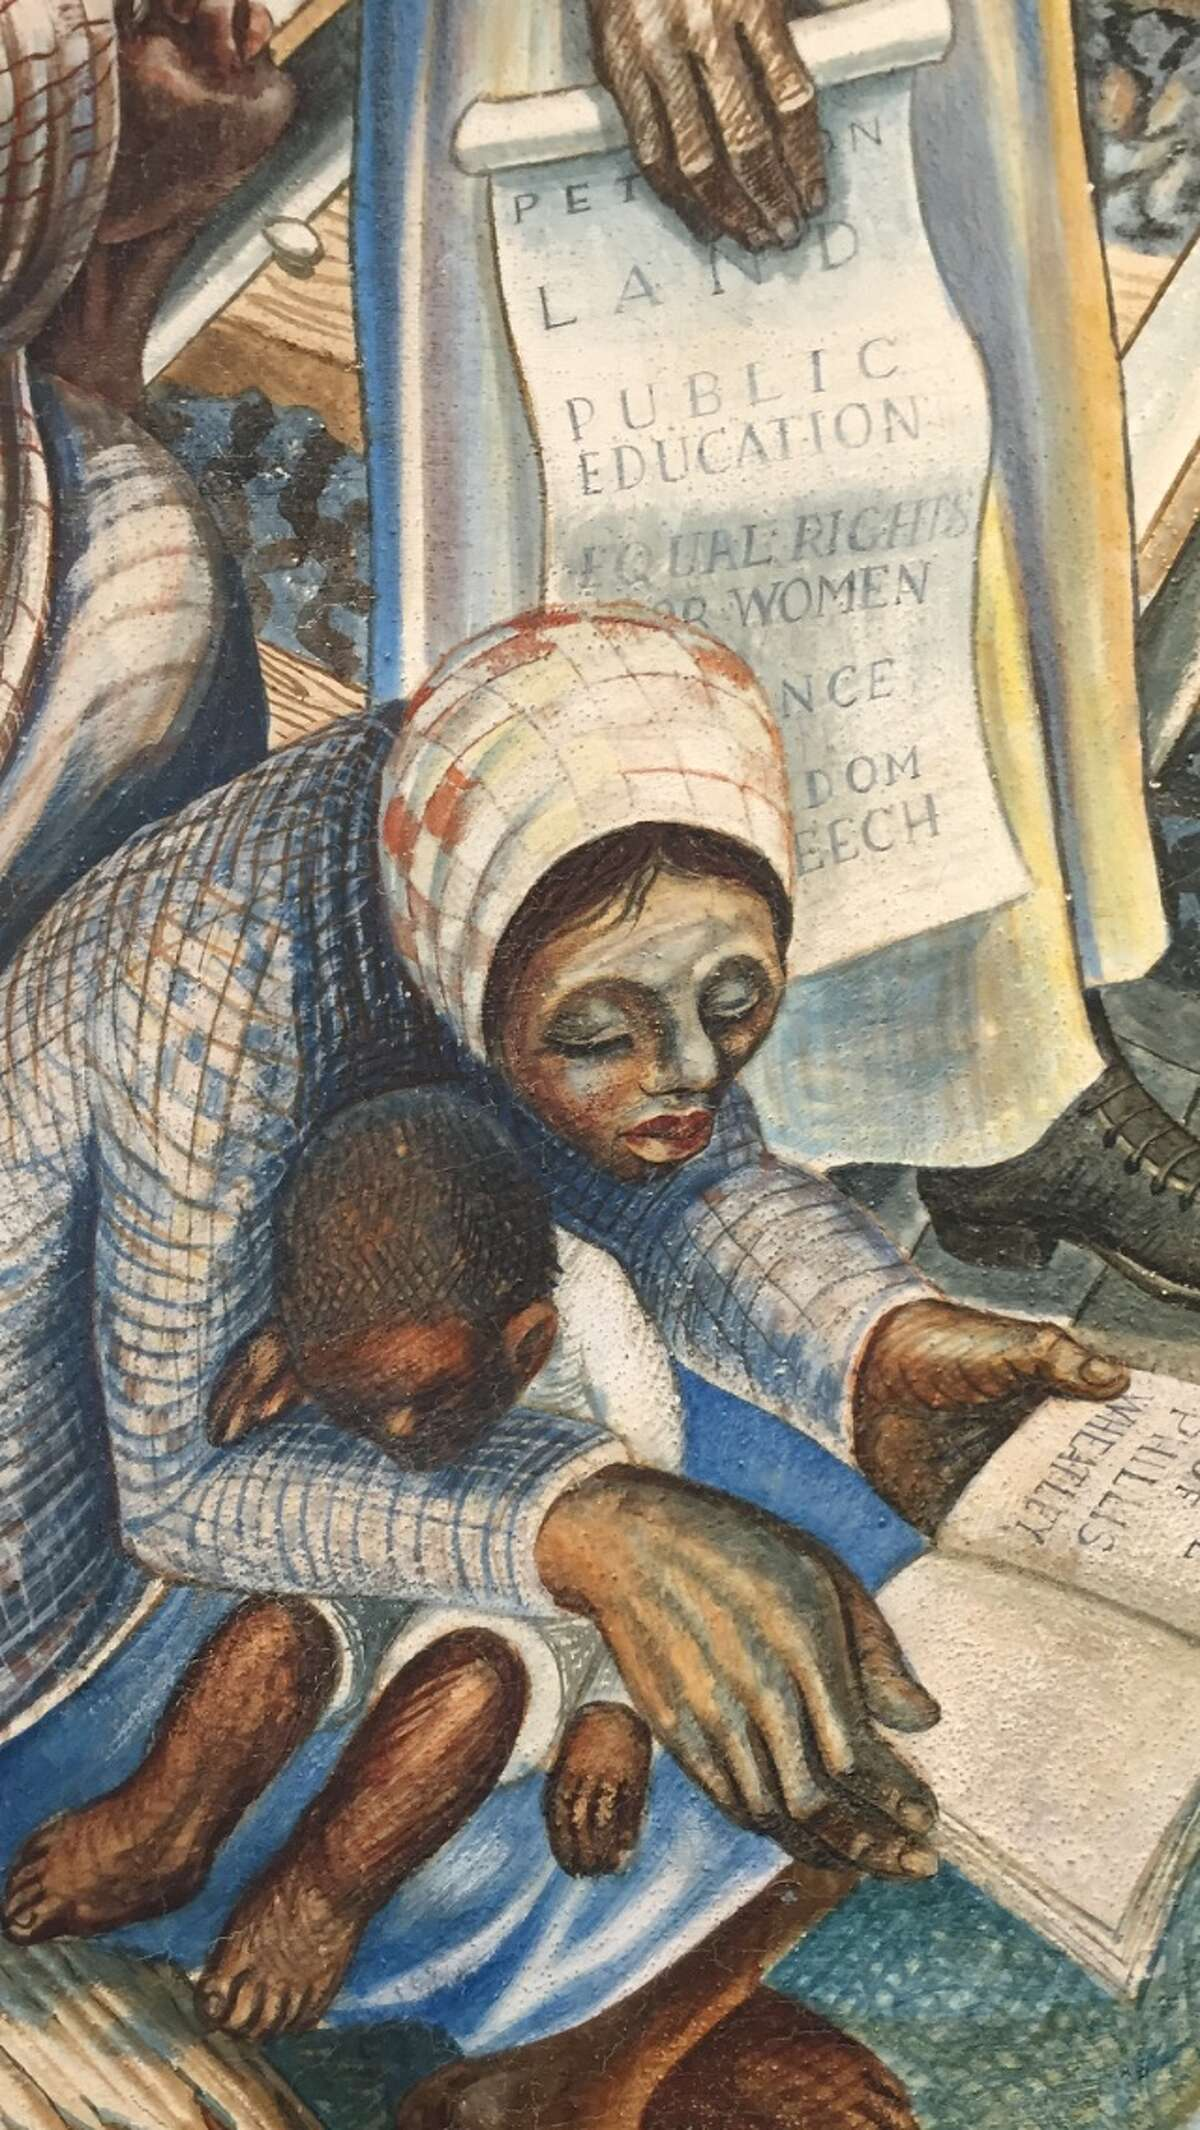 The John Biggers 1953 mural, Contribution of Negro Women to American Life and Education, covers a wall inside the Blue Triangle Multi-Cultural Association's headquarters in Houston's Third Ward. The work featuring Harriet Tubman, Sojourner Truth and Phillis Wheatley was painted when the building was operating as the Blue Triangle YWCA. A leaky roof had been threatening the mural. Caretakers pleaded in January 2016 for contributions - roughly $50,000 for a patch job and $200,000 for a complete restoration. The funding never came. In August 2017, Hurricane Harvey swept through the Houston region and sent water through the roof and walls of the historic building at 3005 McGowen. A week later, the mural has hundreds of black bursts of mold. Funders and art conservators are responding the national artistic emergency with restoration offers and money. Biggers, who founded the art department at Texas Southern University, died in 2001 at 79. He is considered one of the foremost artists who captured the black experience of the 20th century and mentored several generations of Houston artists. This is a snapshot of the mural from January 2016 before the damage.